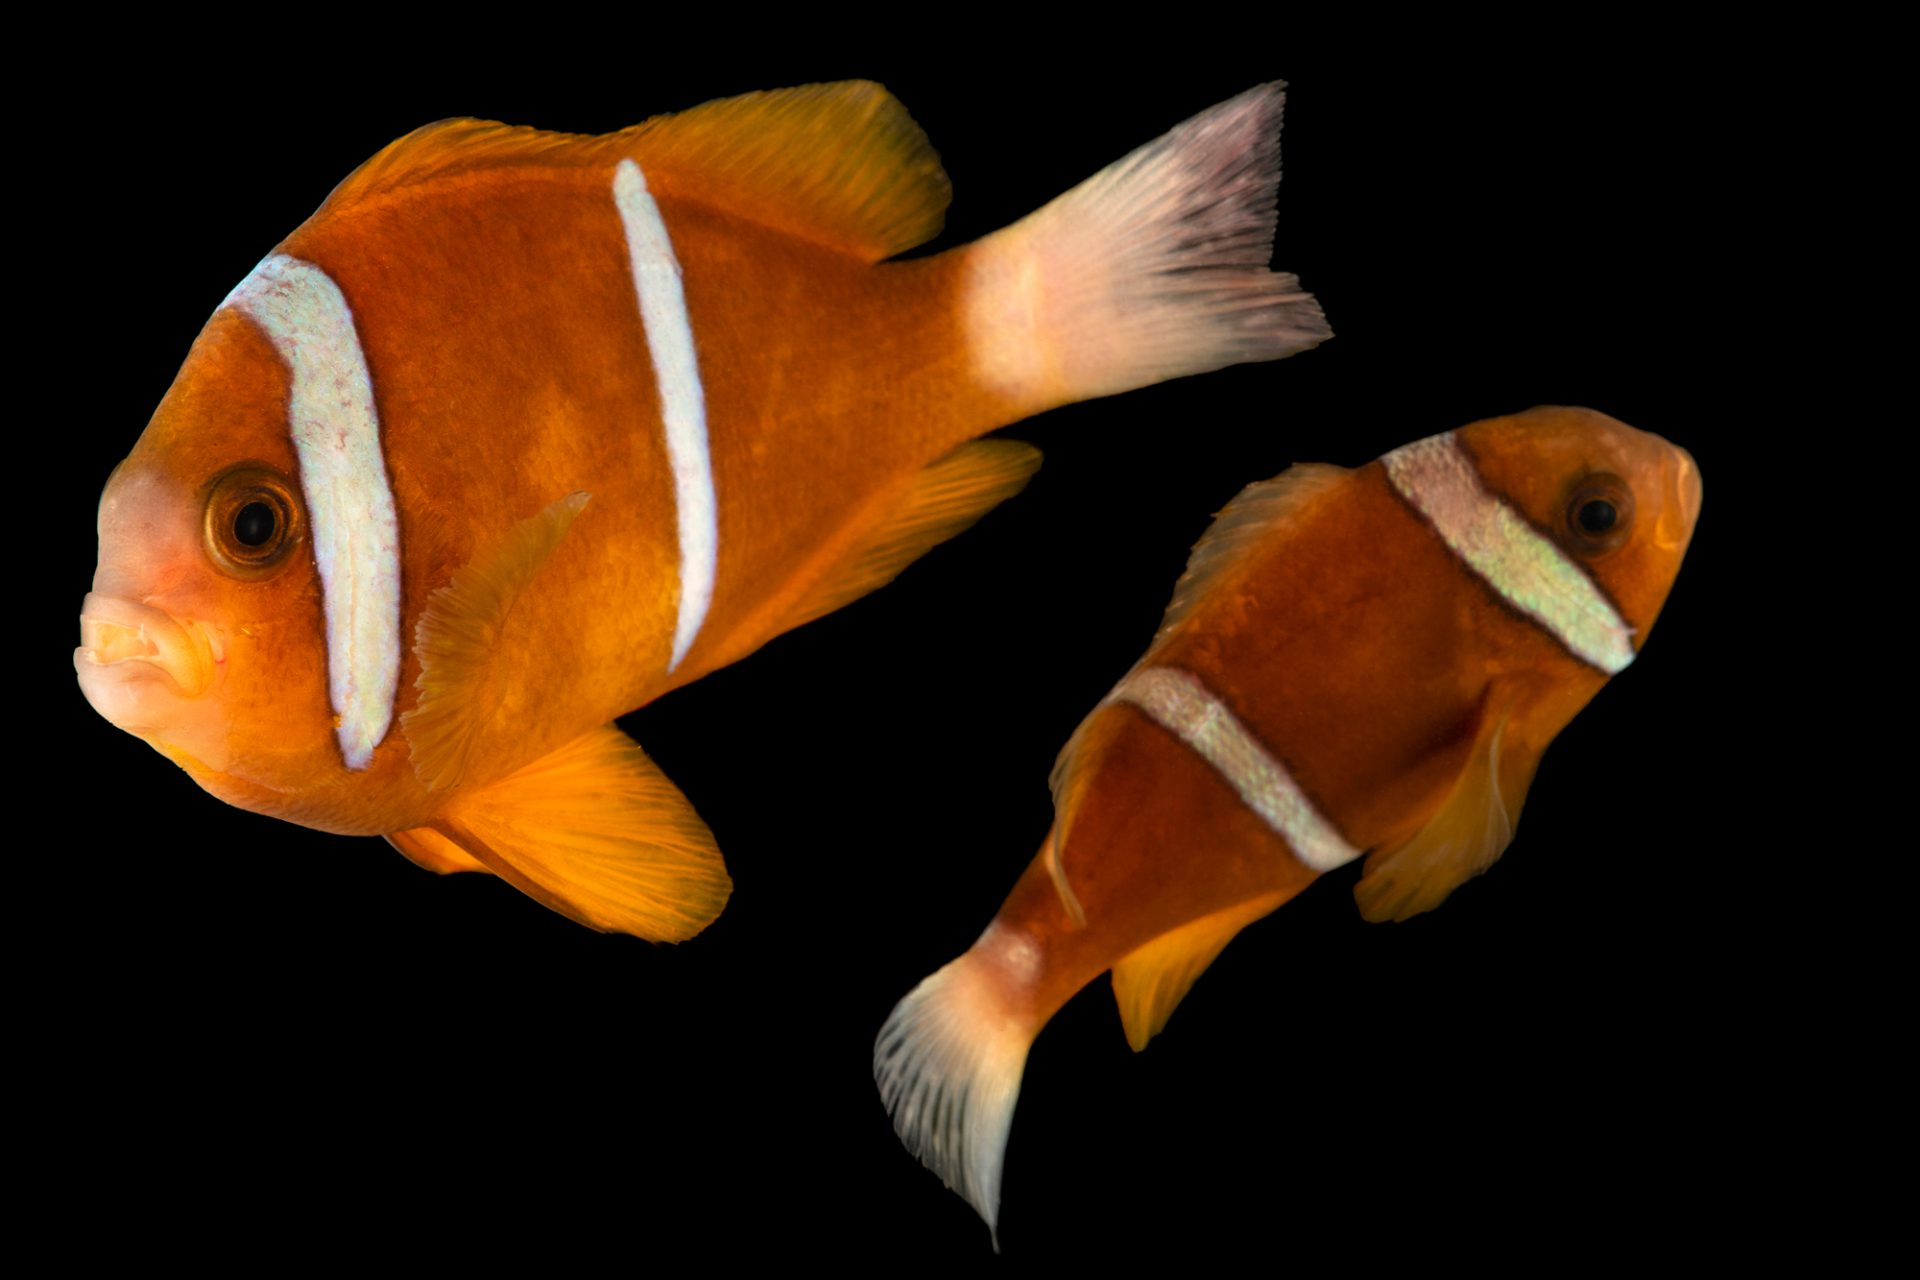 Photo: Barrier Reef anemonefish (Amphiprion akindynos) photographed at Downtown Aquarium in Denver, Colorado.